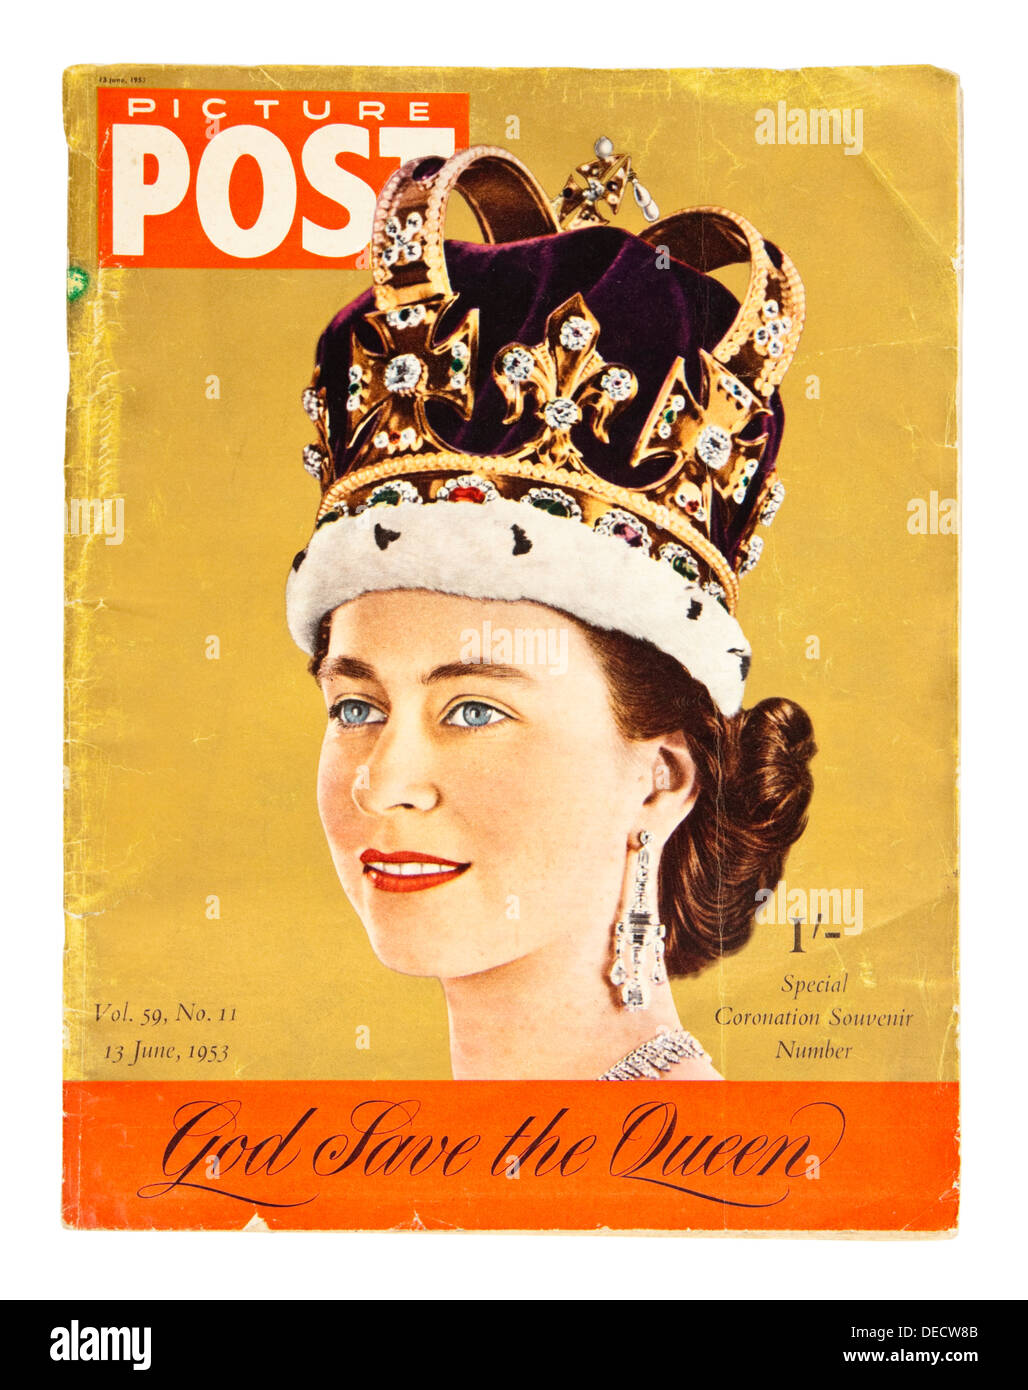 13th June 1953 Special Souvenir Edition of the Picture Post magazine to celebrate the Coronation of Queen Elizabeth II - Stock Image